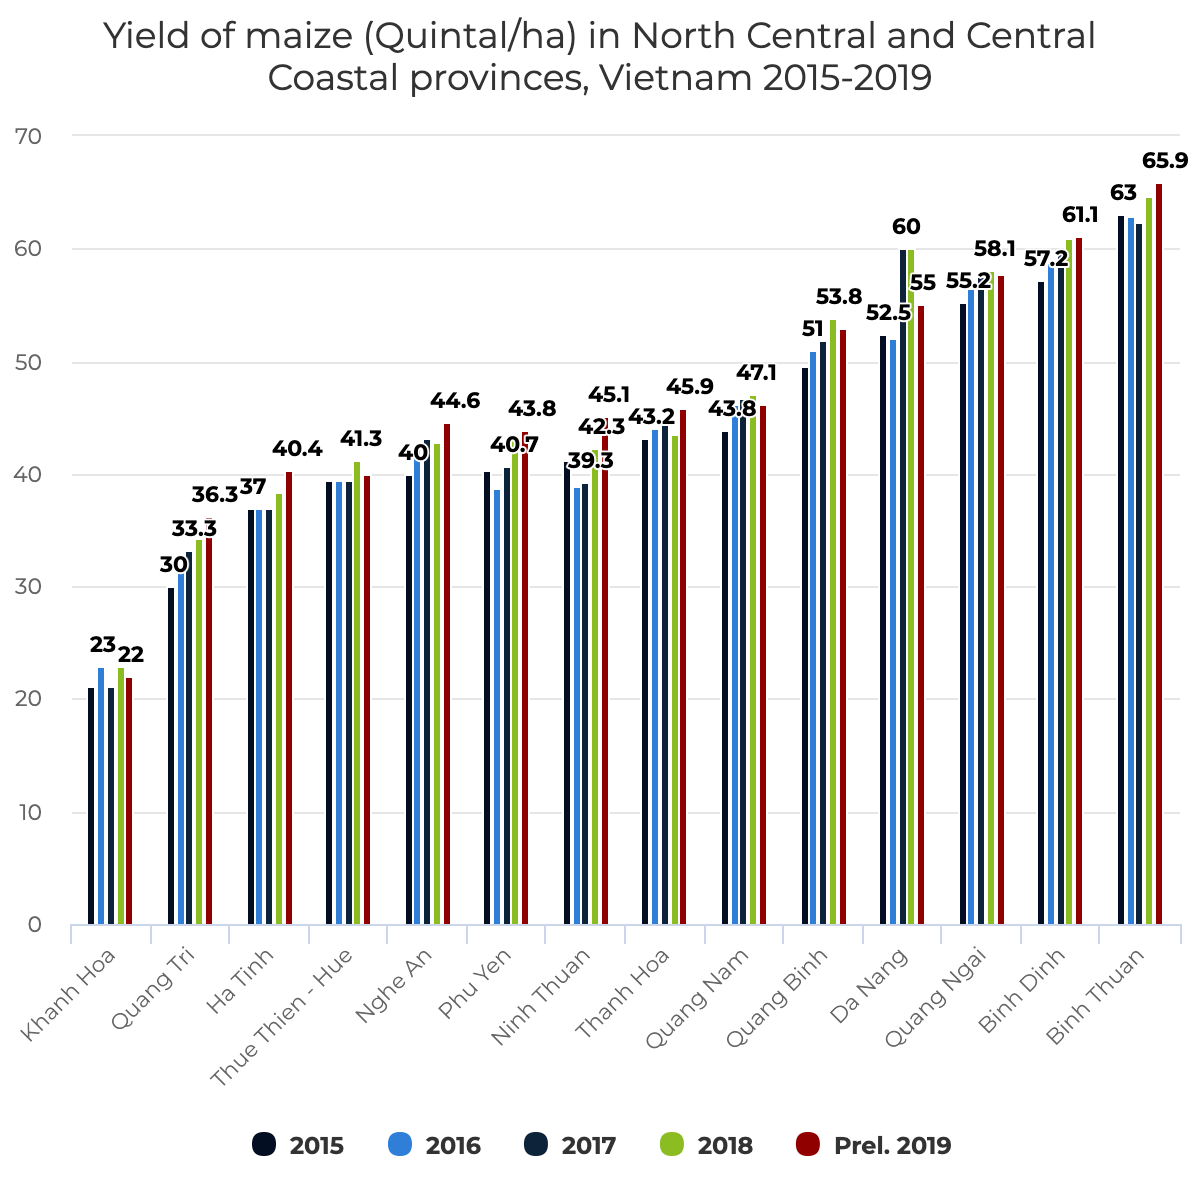 Yield of maize (Quintal/ha) in North Central and Central Coastal provinces, Vietnam 2015-2019